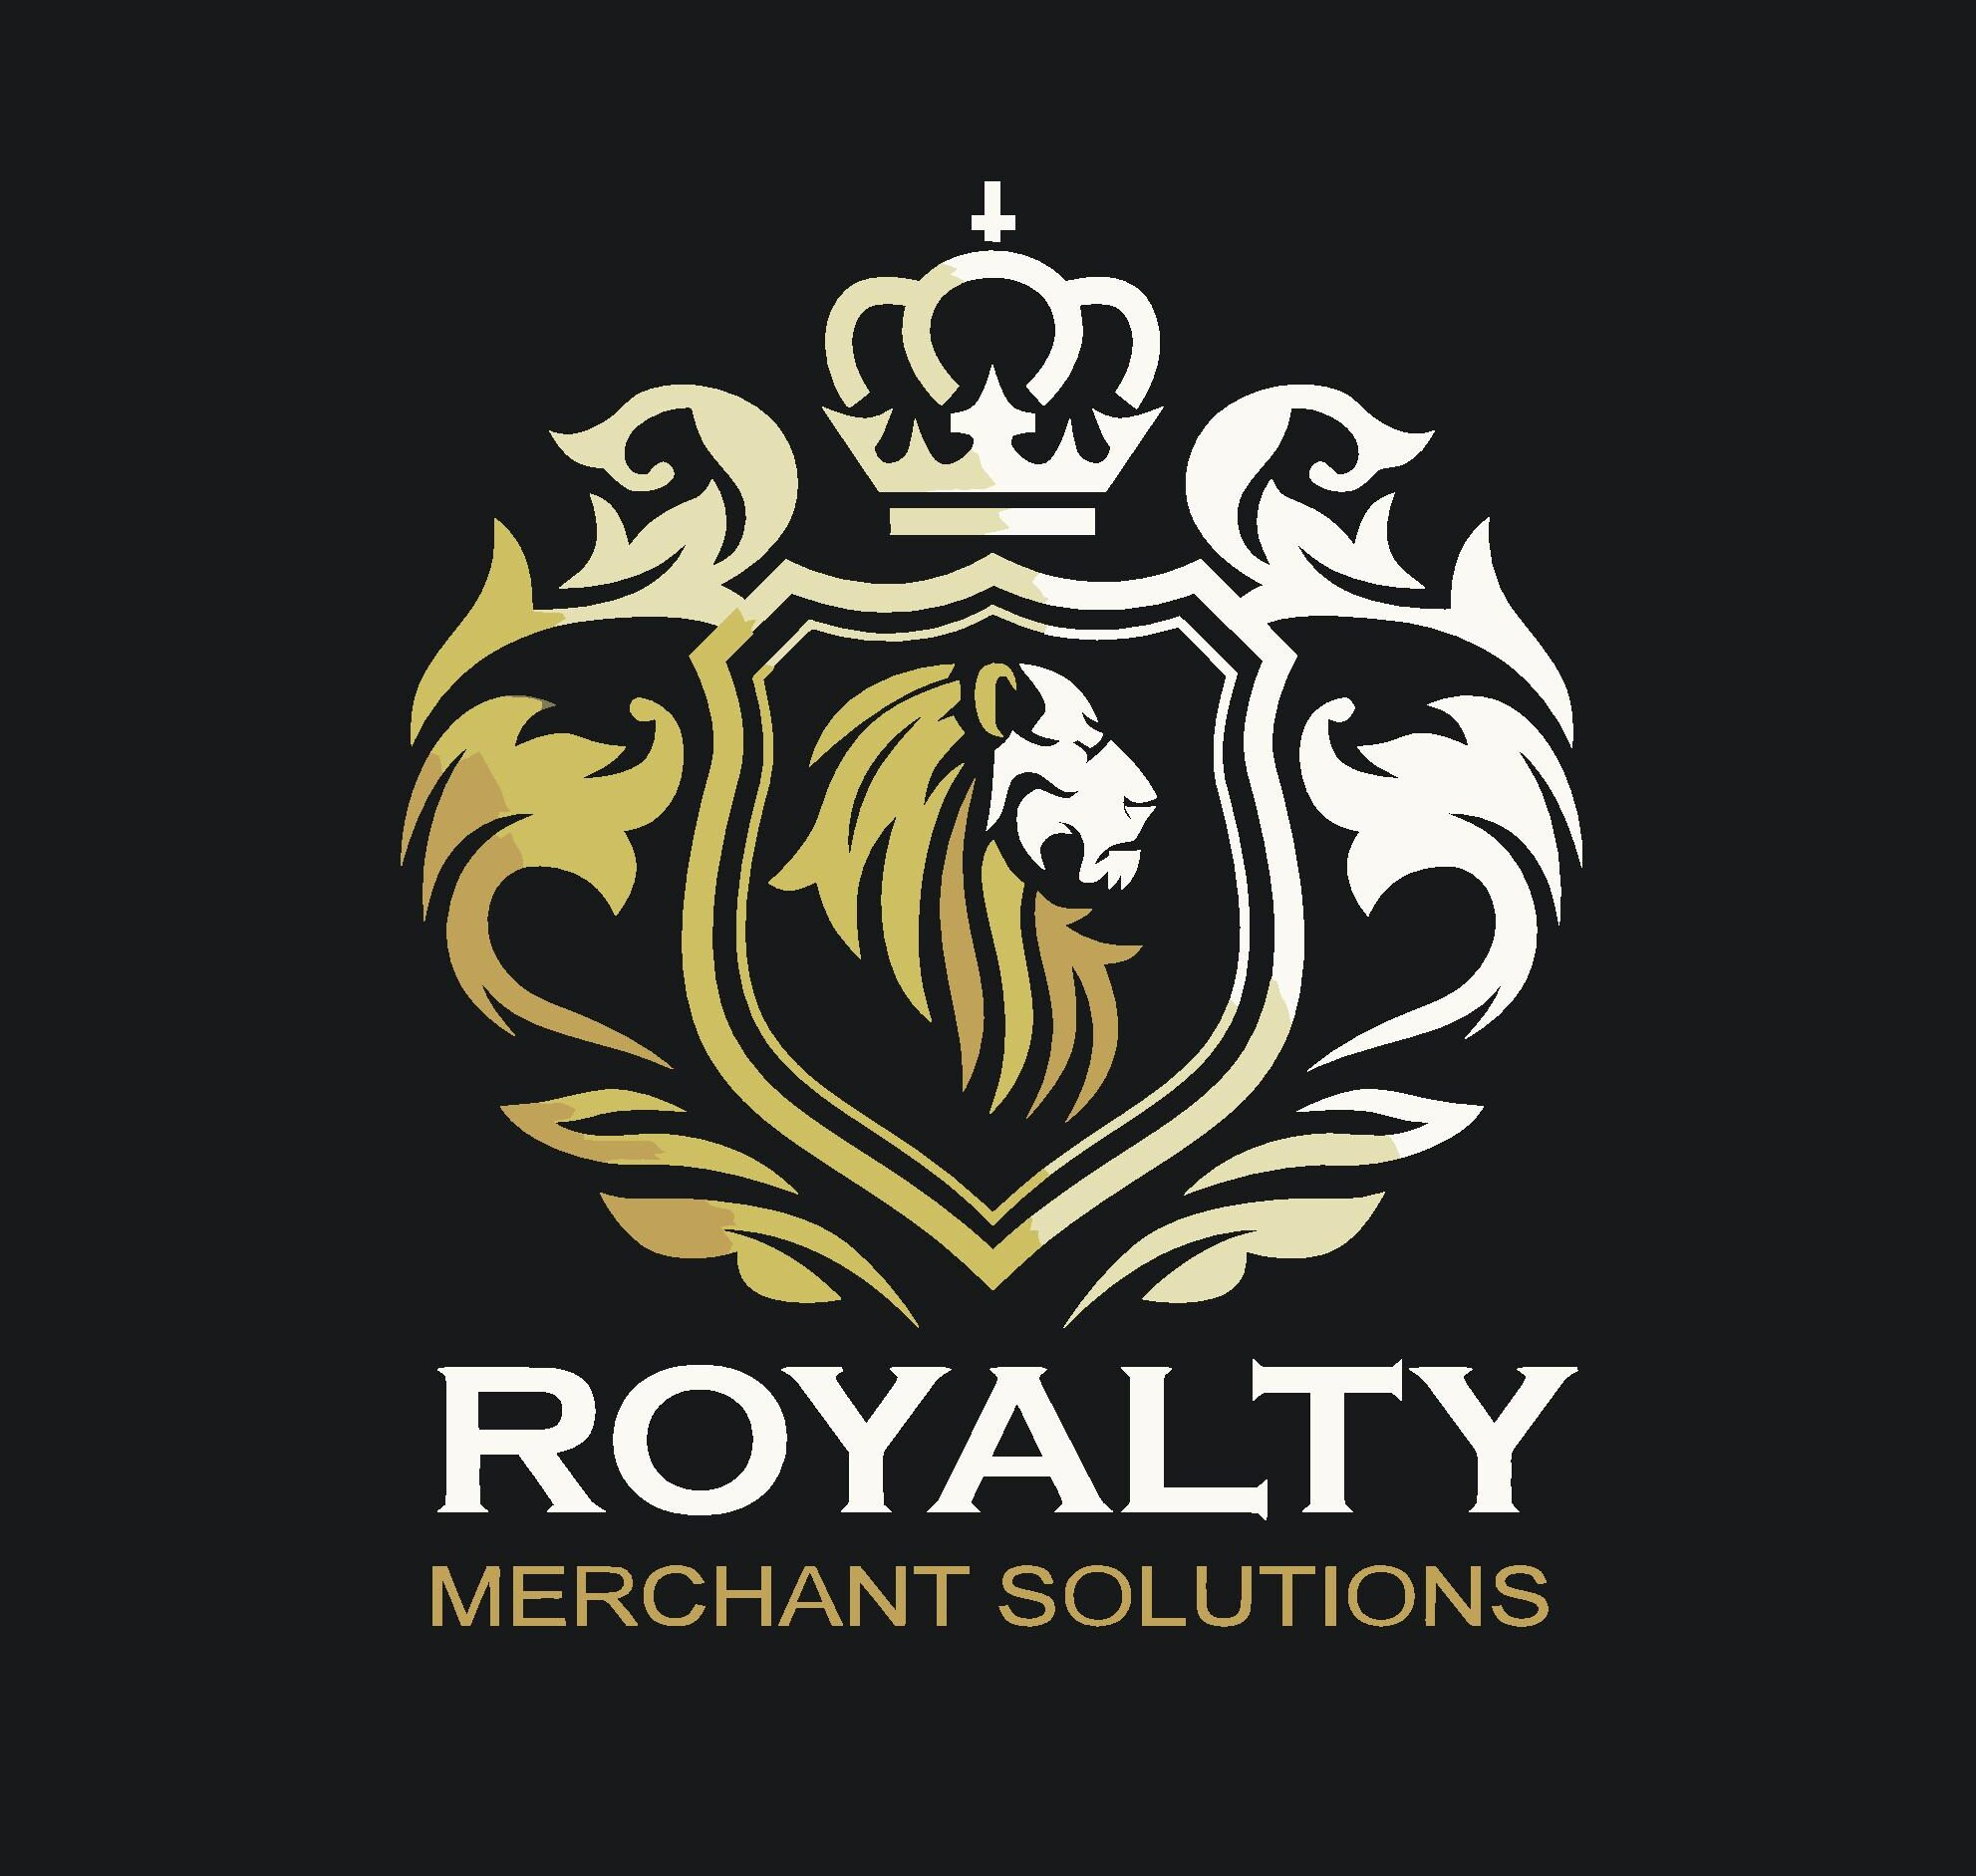 cropped-ROYALTY-MERCH-SOLUTIONS-LOGO-FINAL-3-stroke-and-fill-stroke-and-fill-page-001-2.jpg